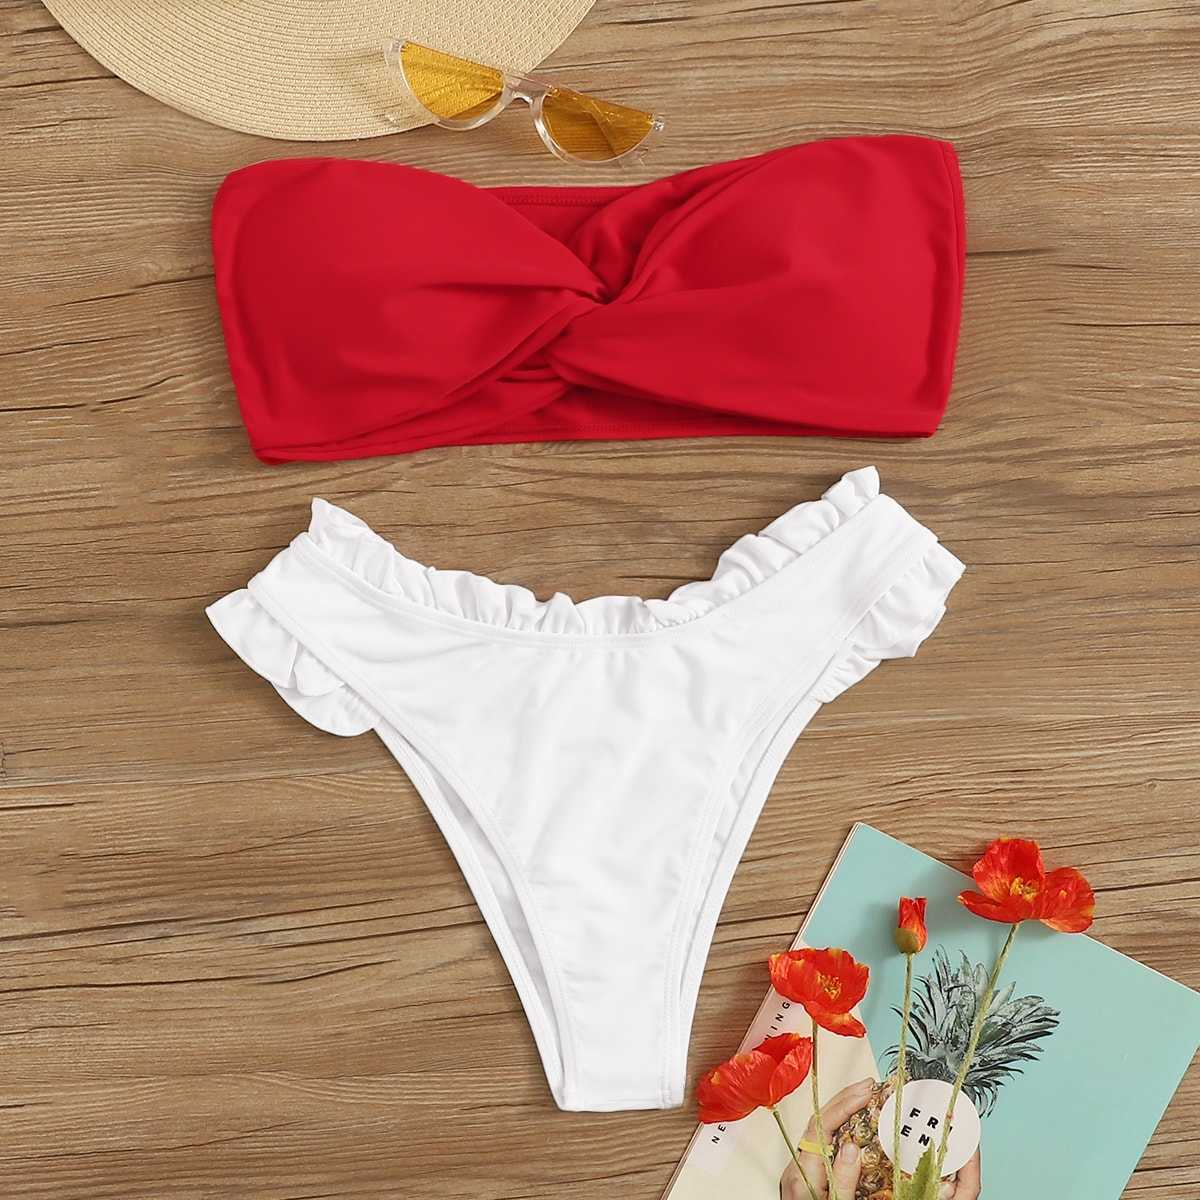 Two Tone Twist Top With Frill Trim Bikini Set in Multicolor by ROMWE on GOOFASH